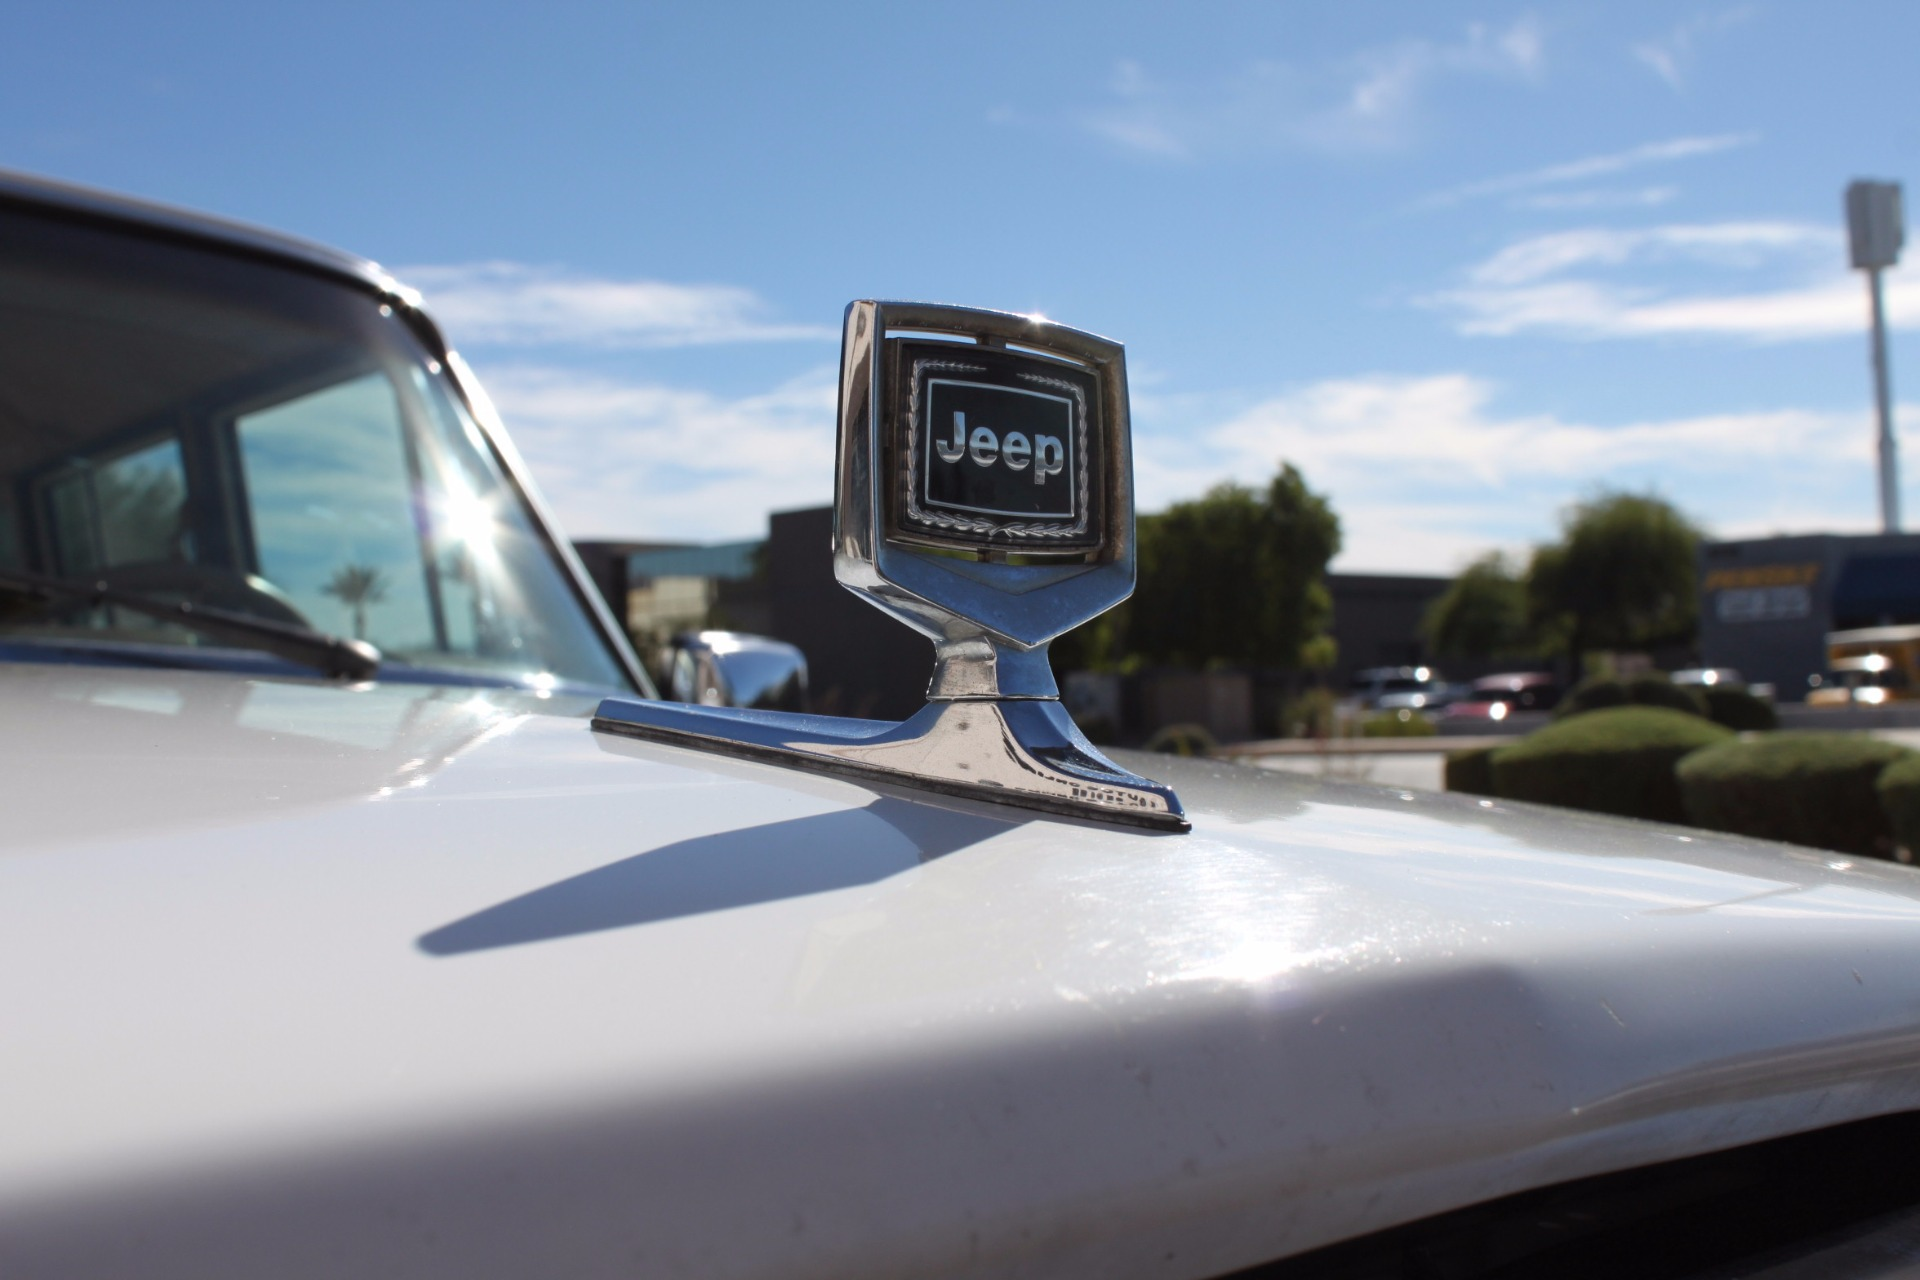 Used-1988-Jeep-Grand-Wagoneer-Limited-4X4-Land-Rover